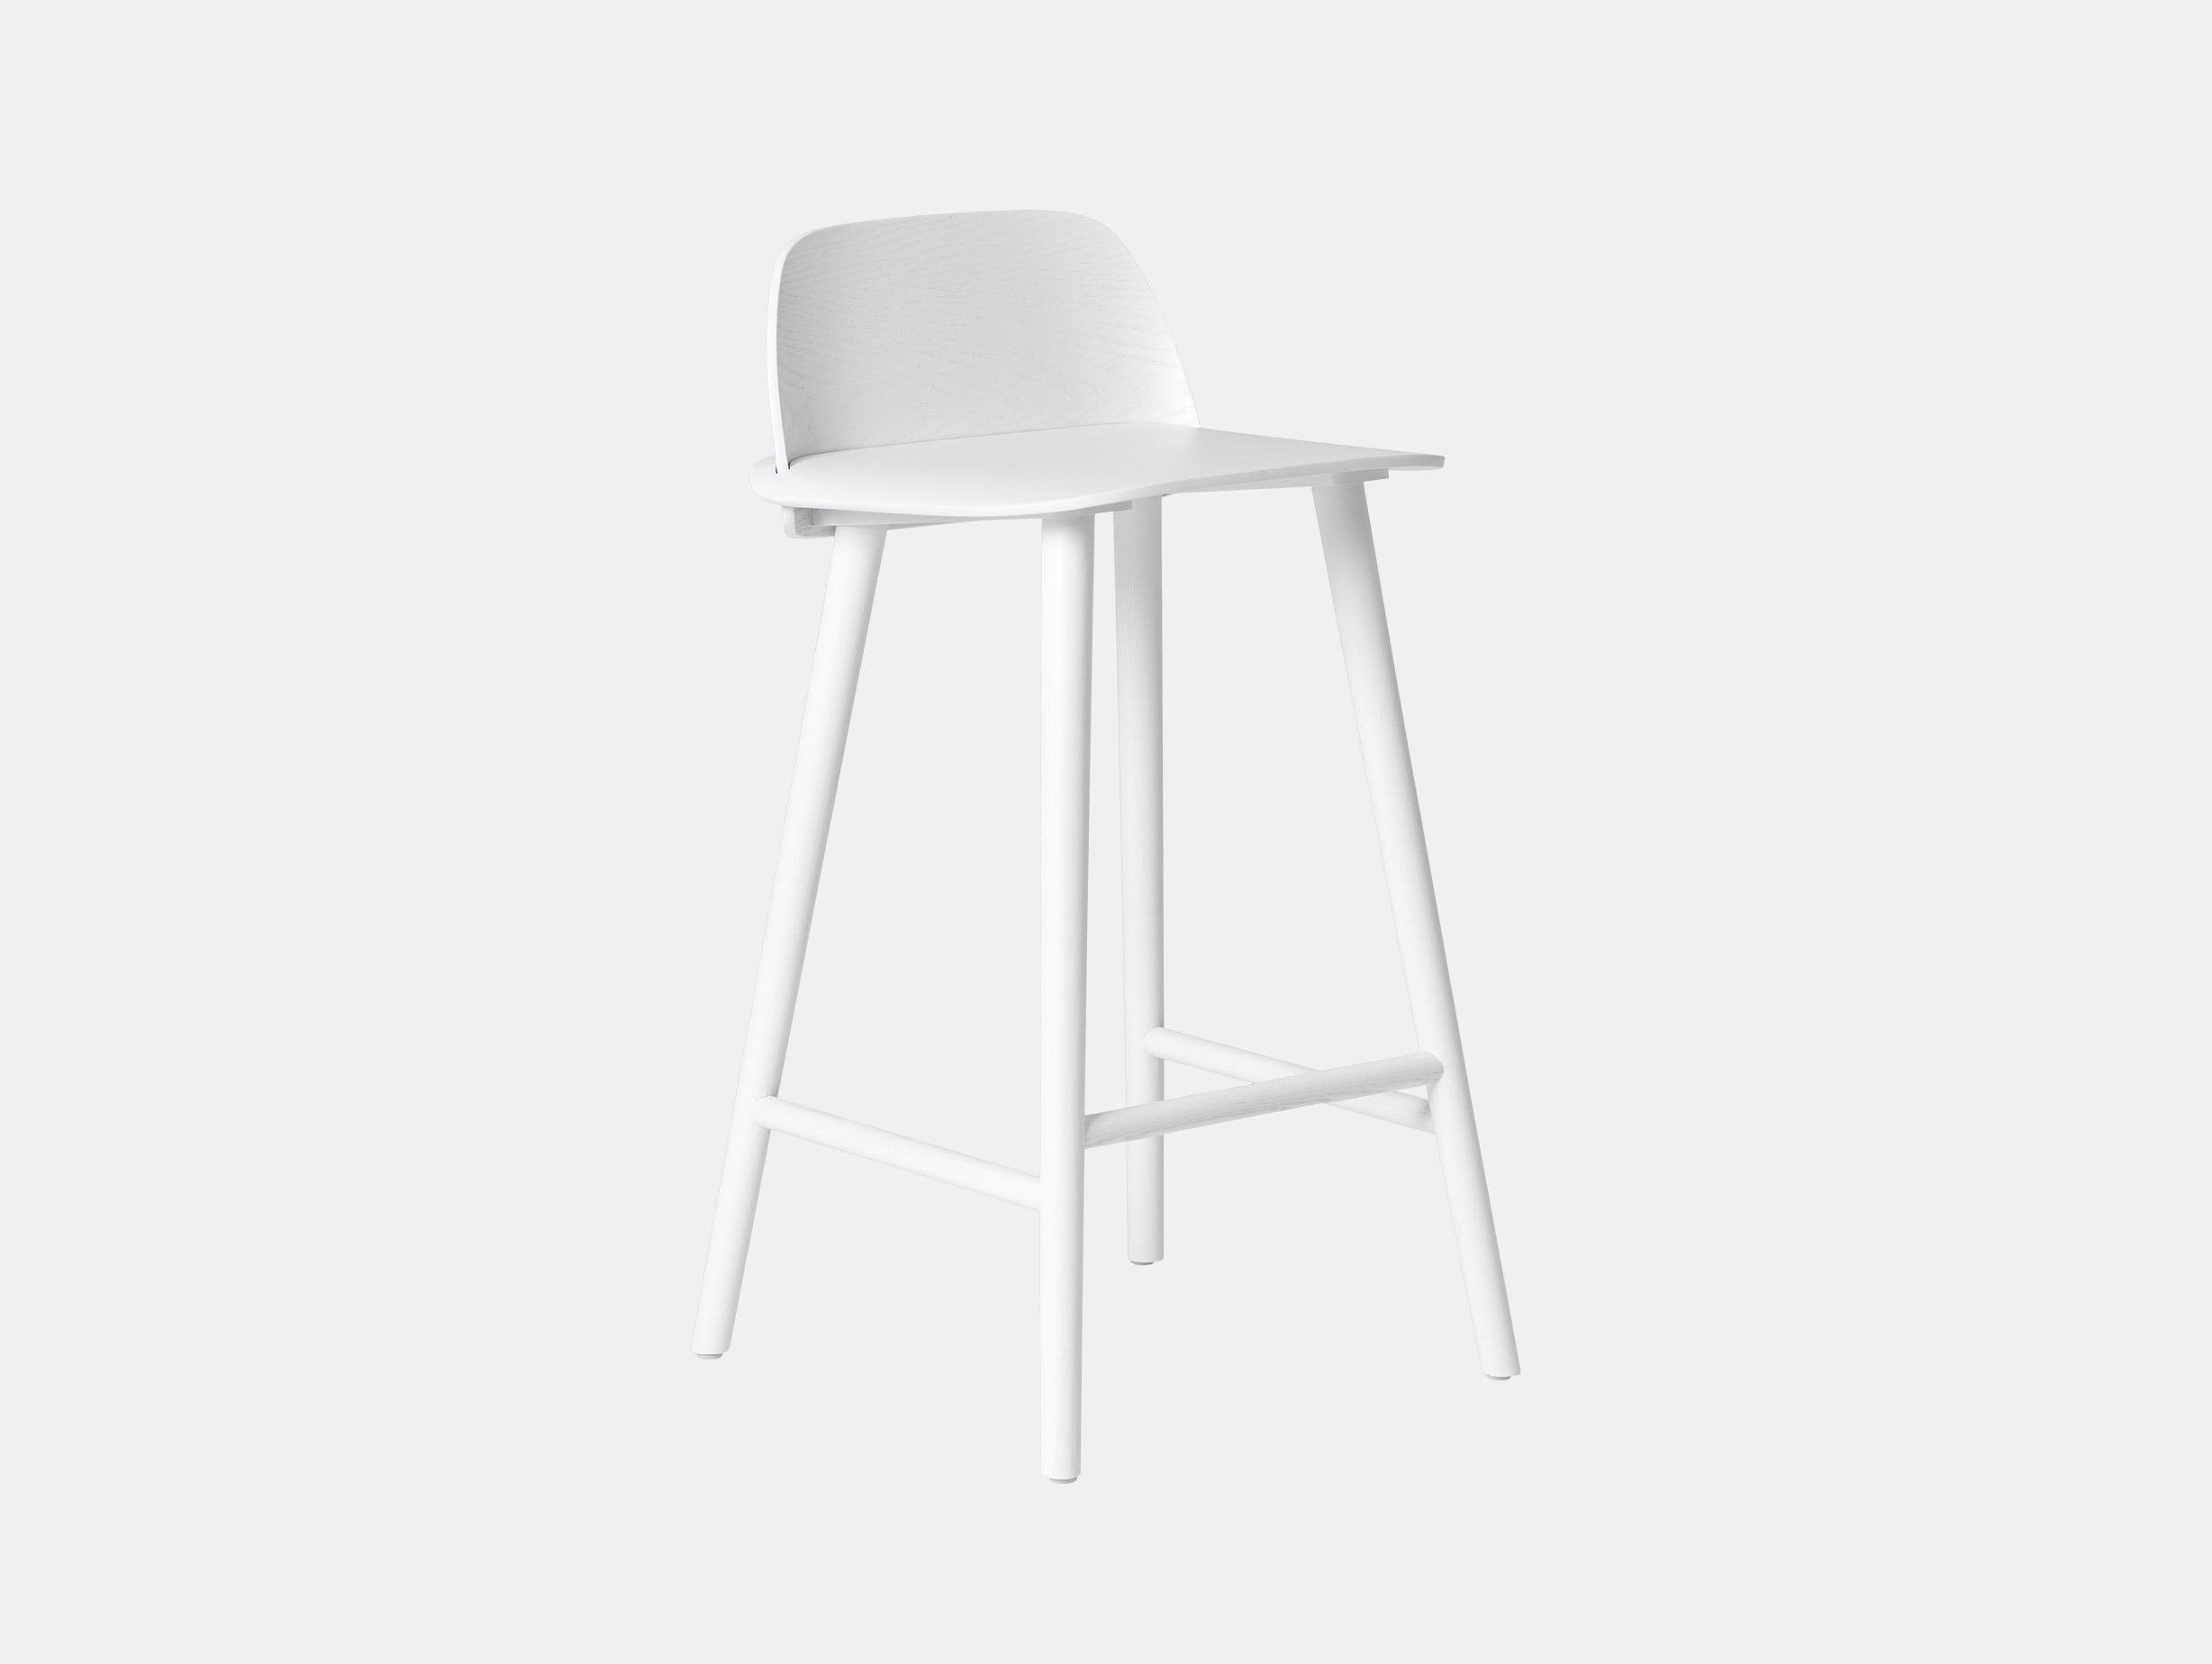 Muuto Nerd Stool White David Geckeler